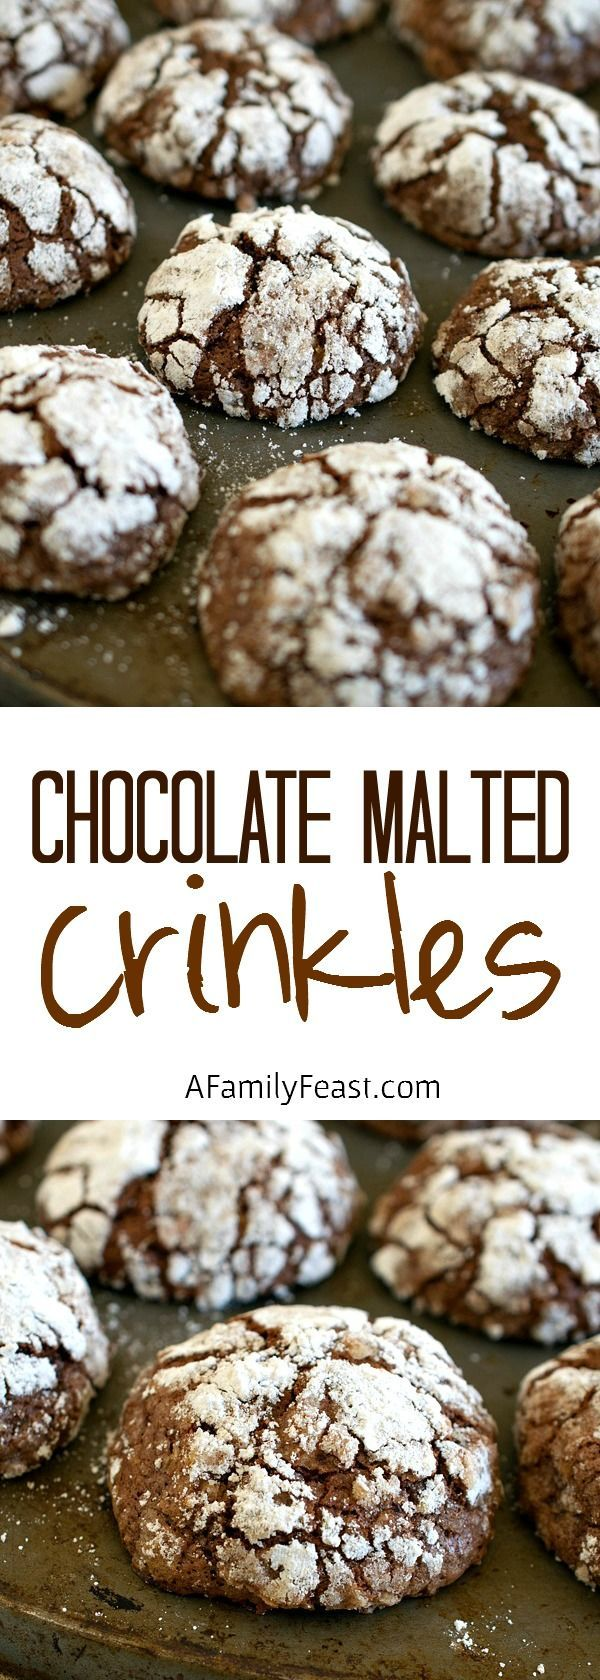 Chocolate Malted Crinkles - A Family Feast® #chocolatecrinklecookies